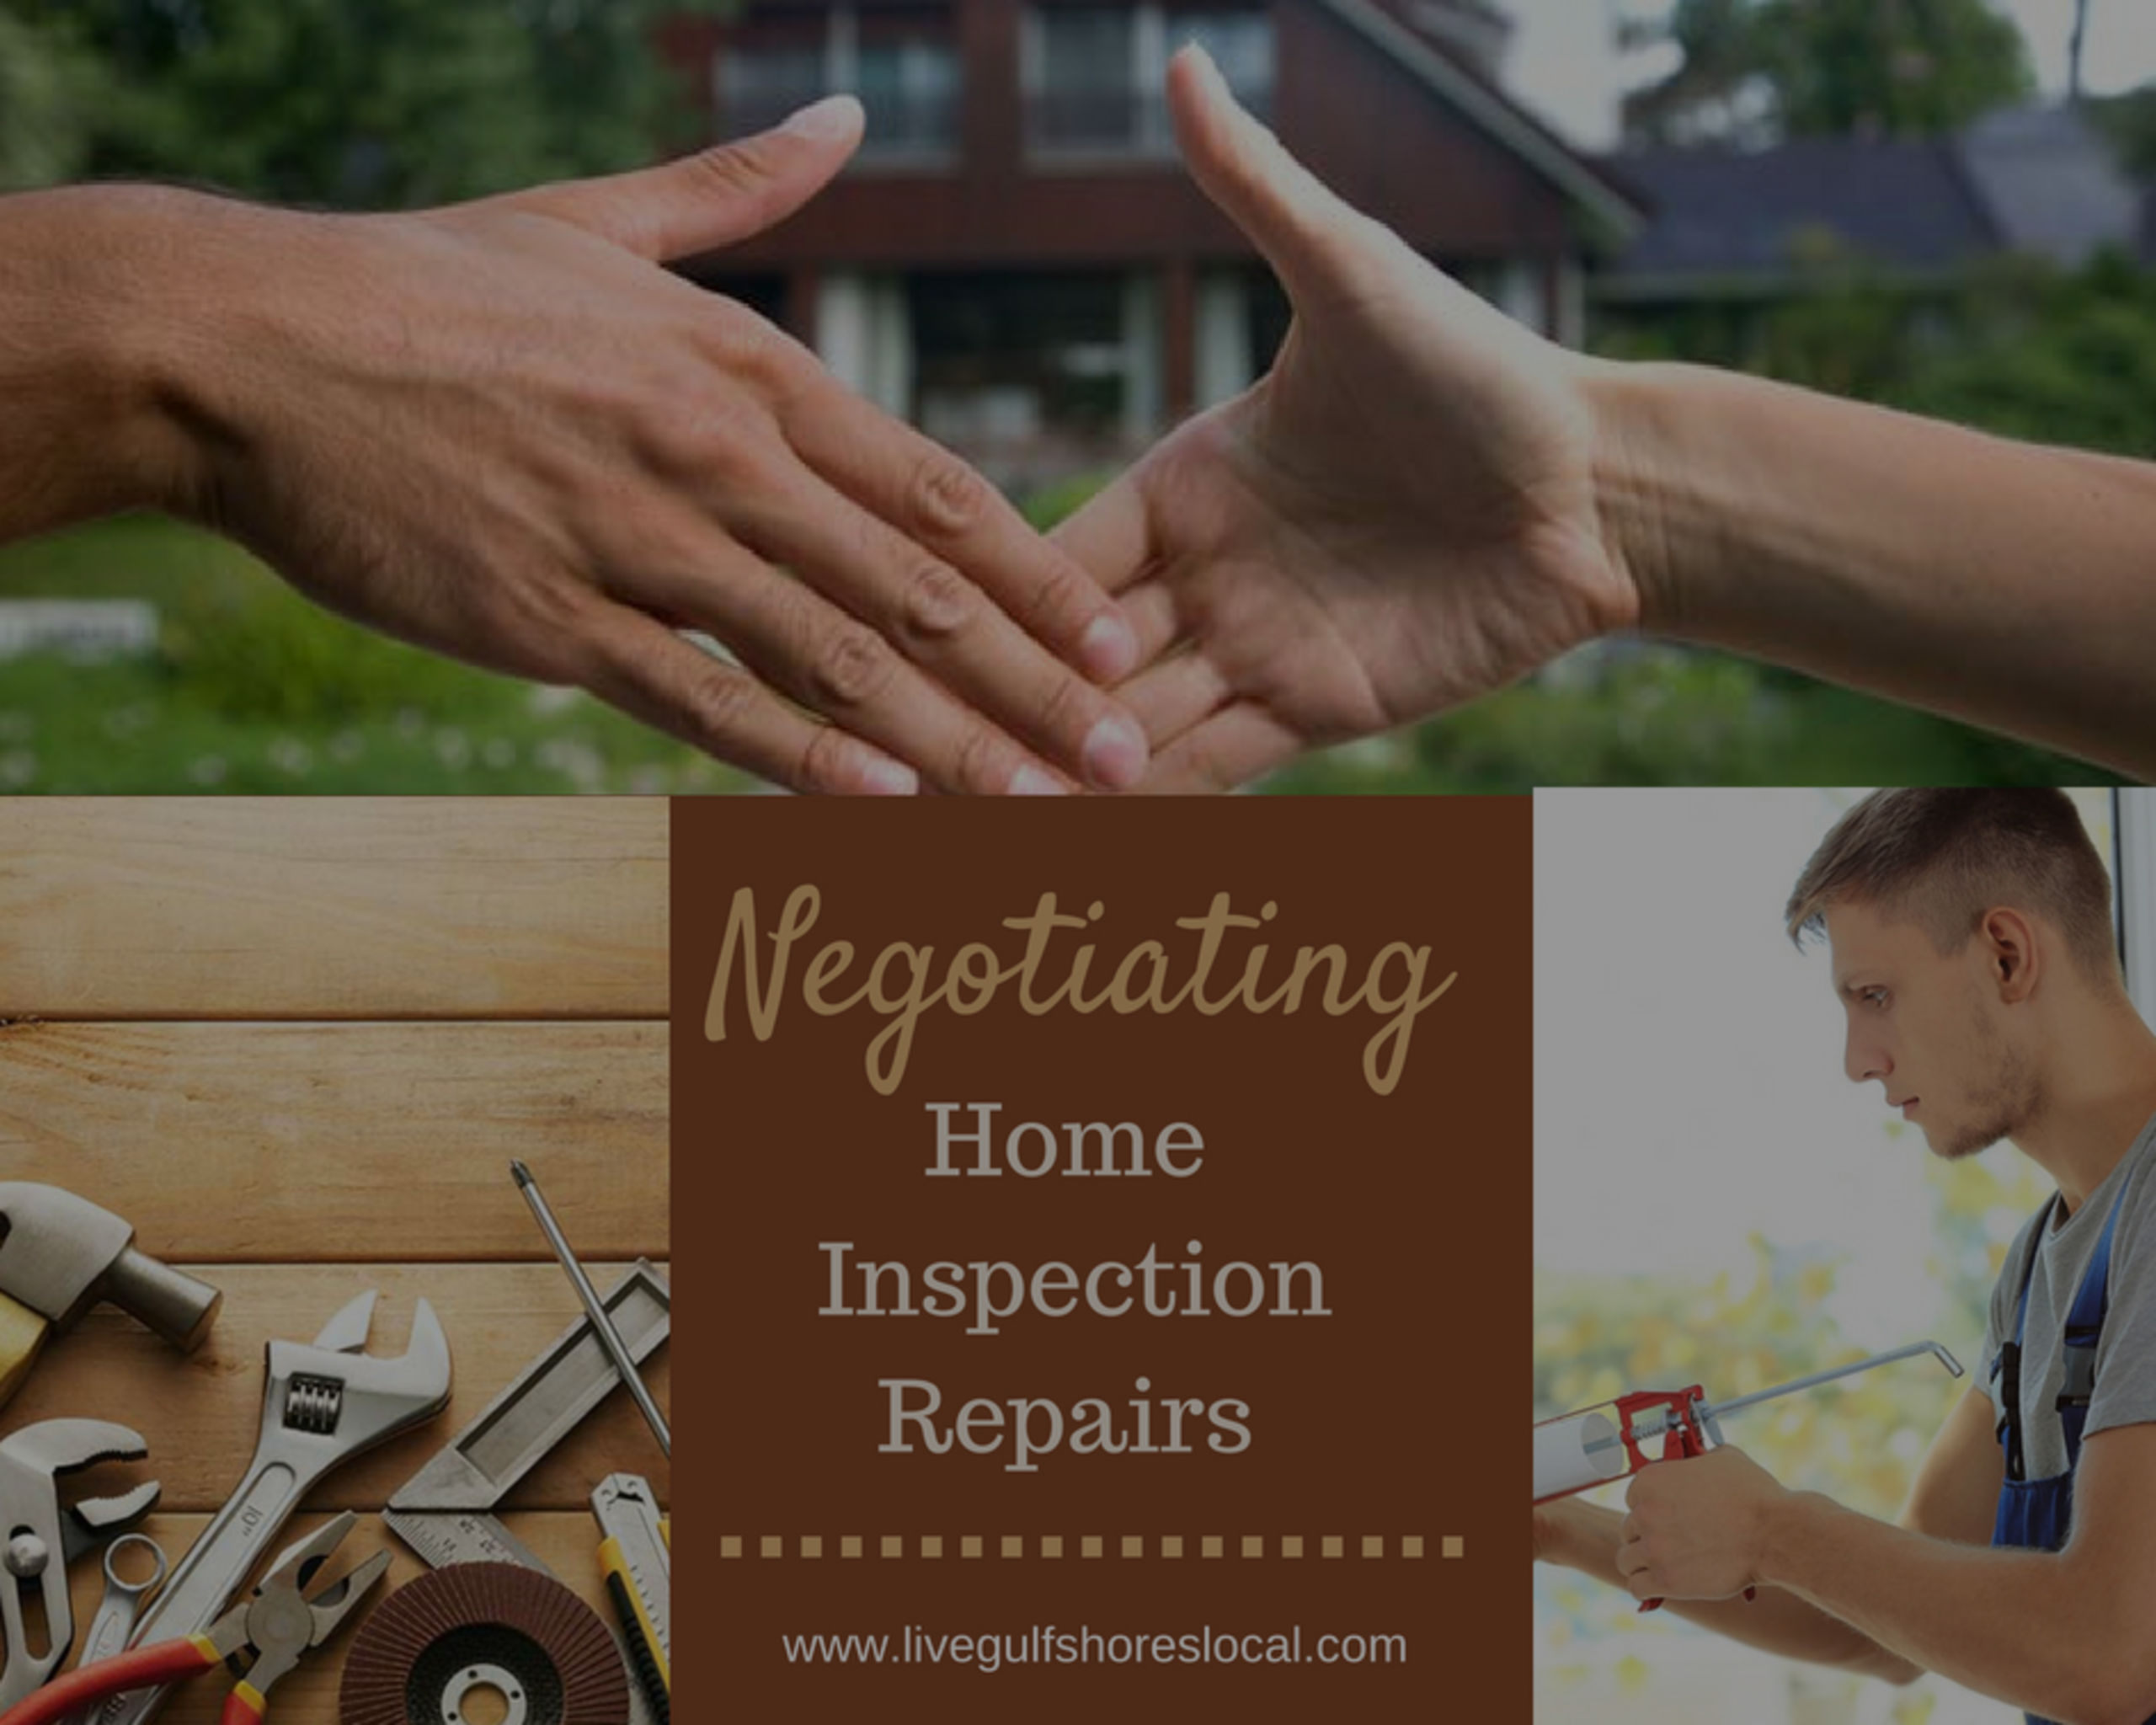 Negotiating Home Inspection Repairs